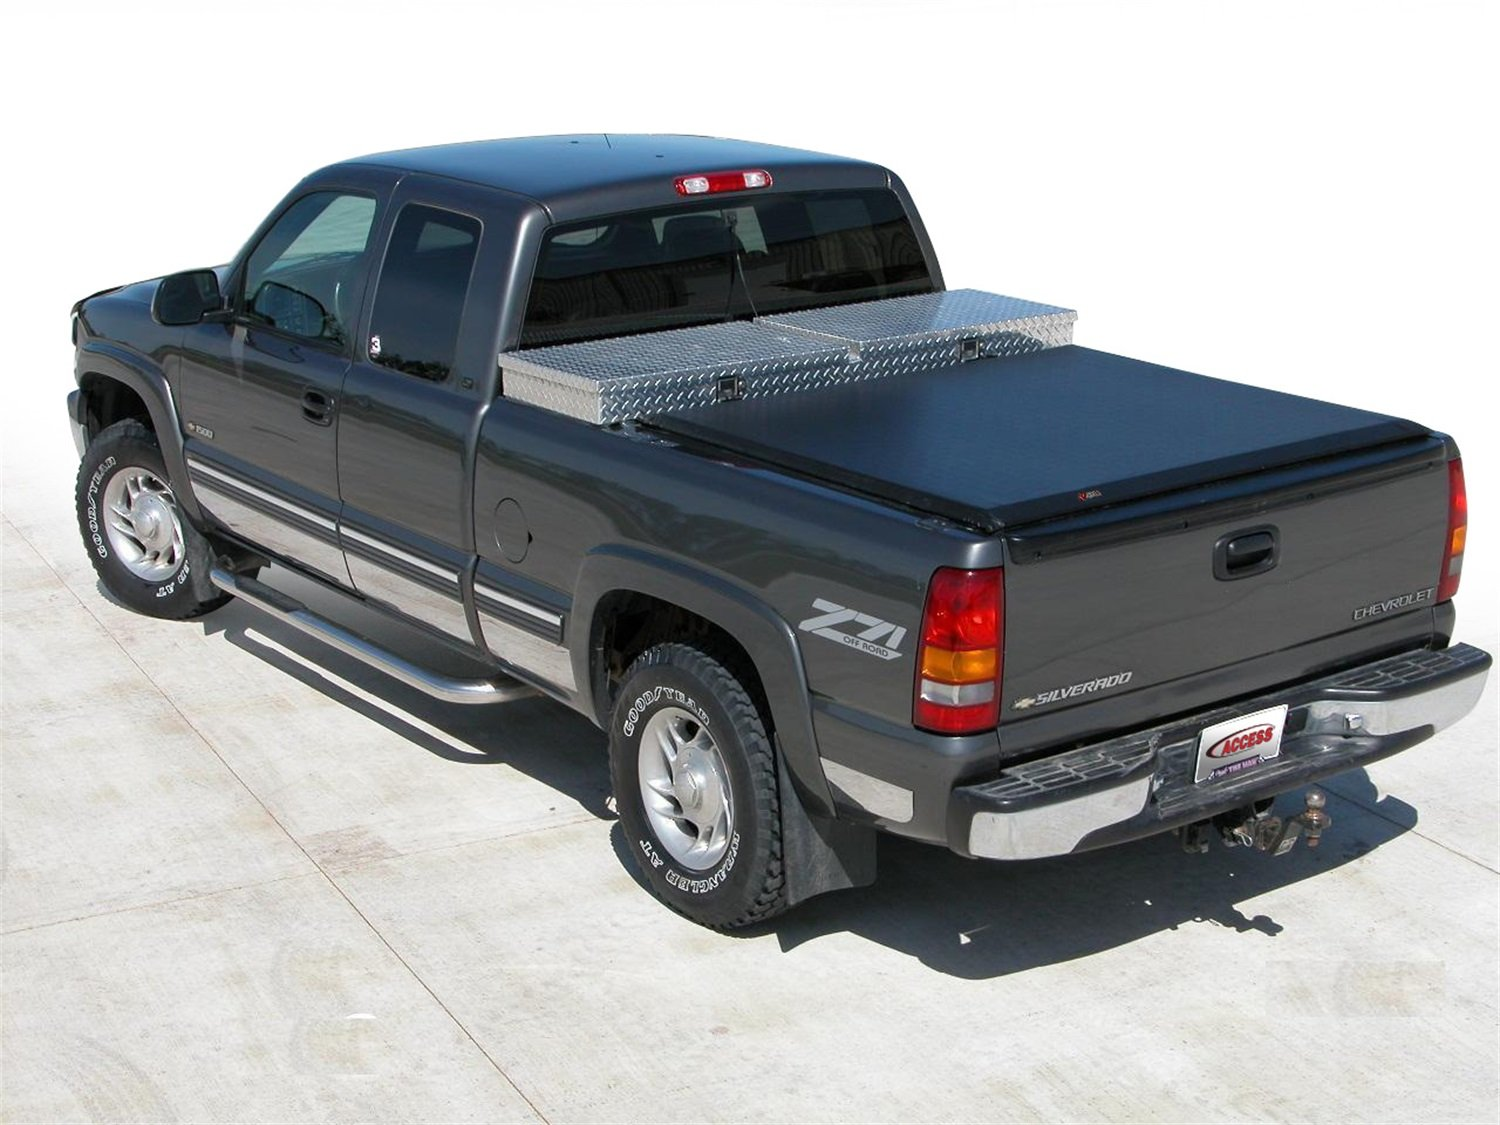 Best Retractable Tonneau Cover >> 24 Best Truck Bed Tonneau Covers and 12 Trusted Brands ...